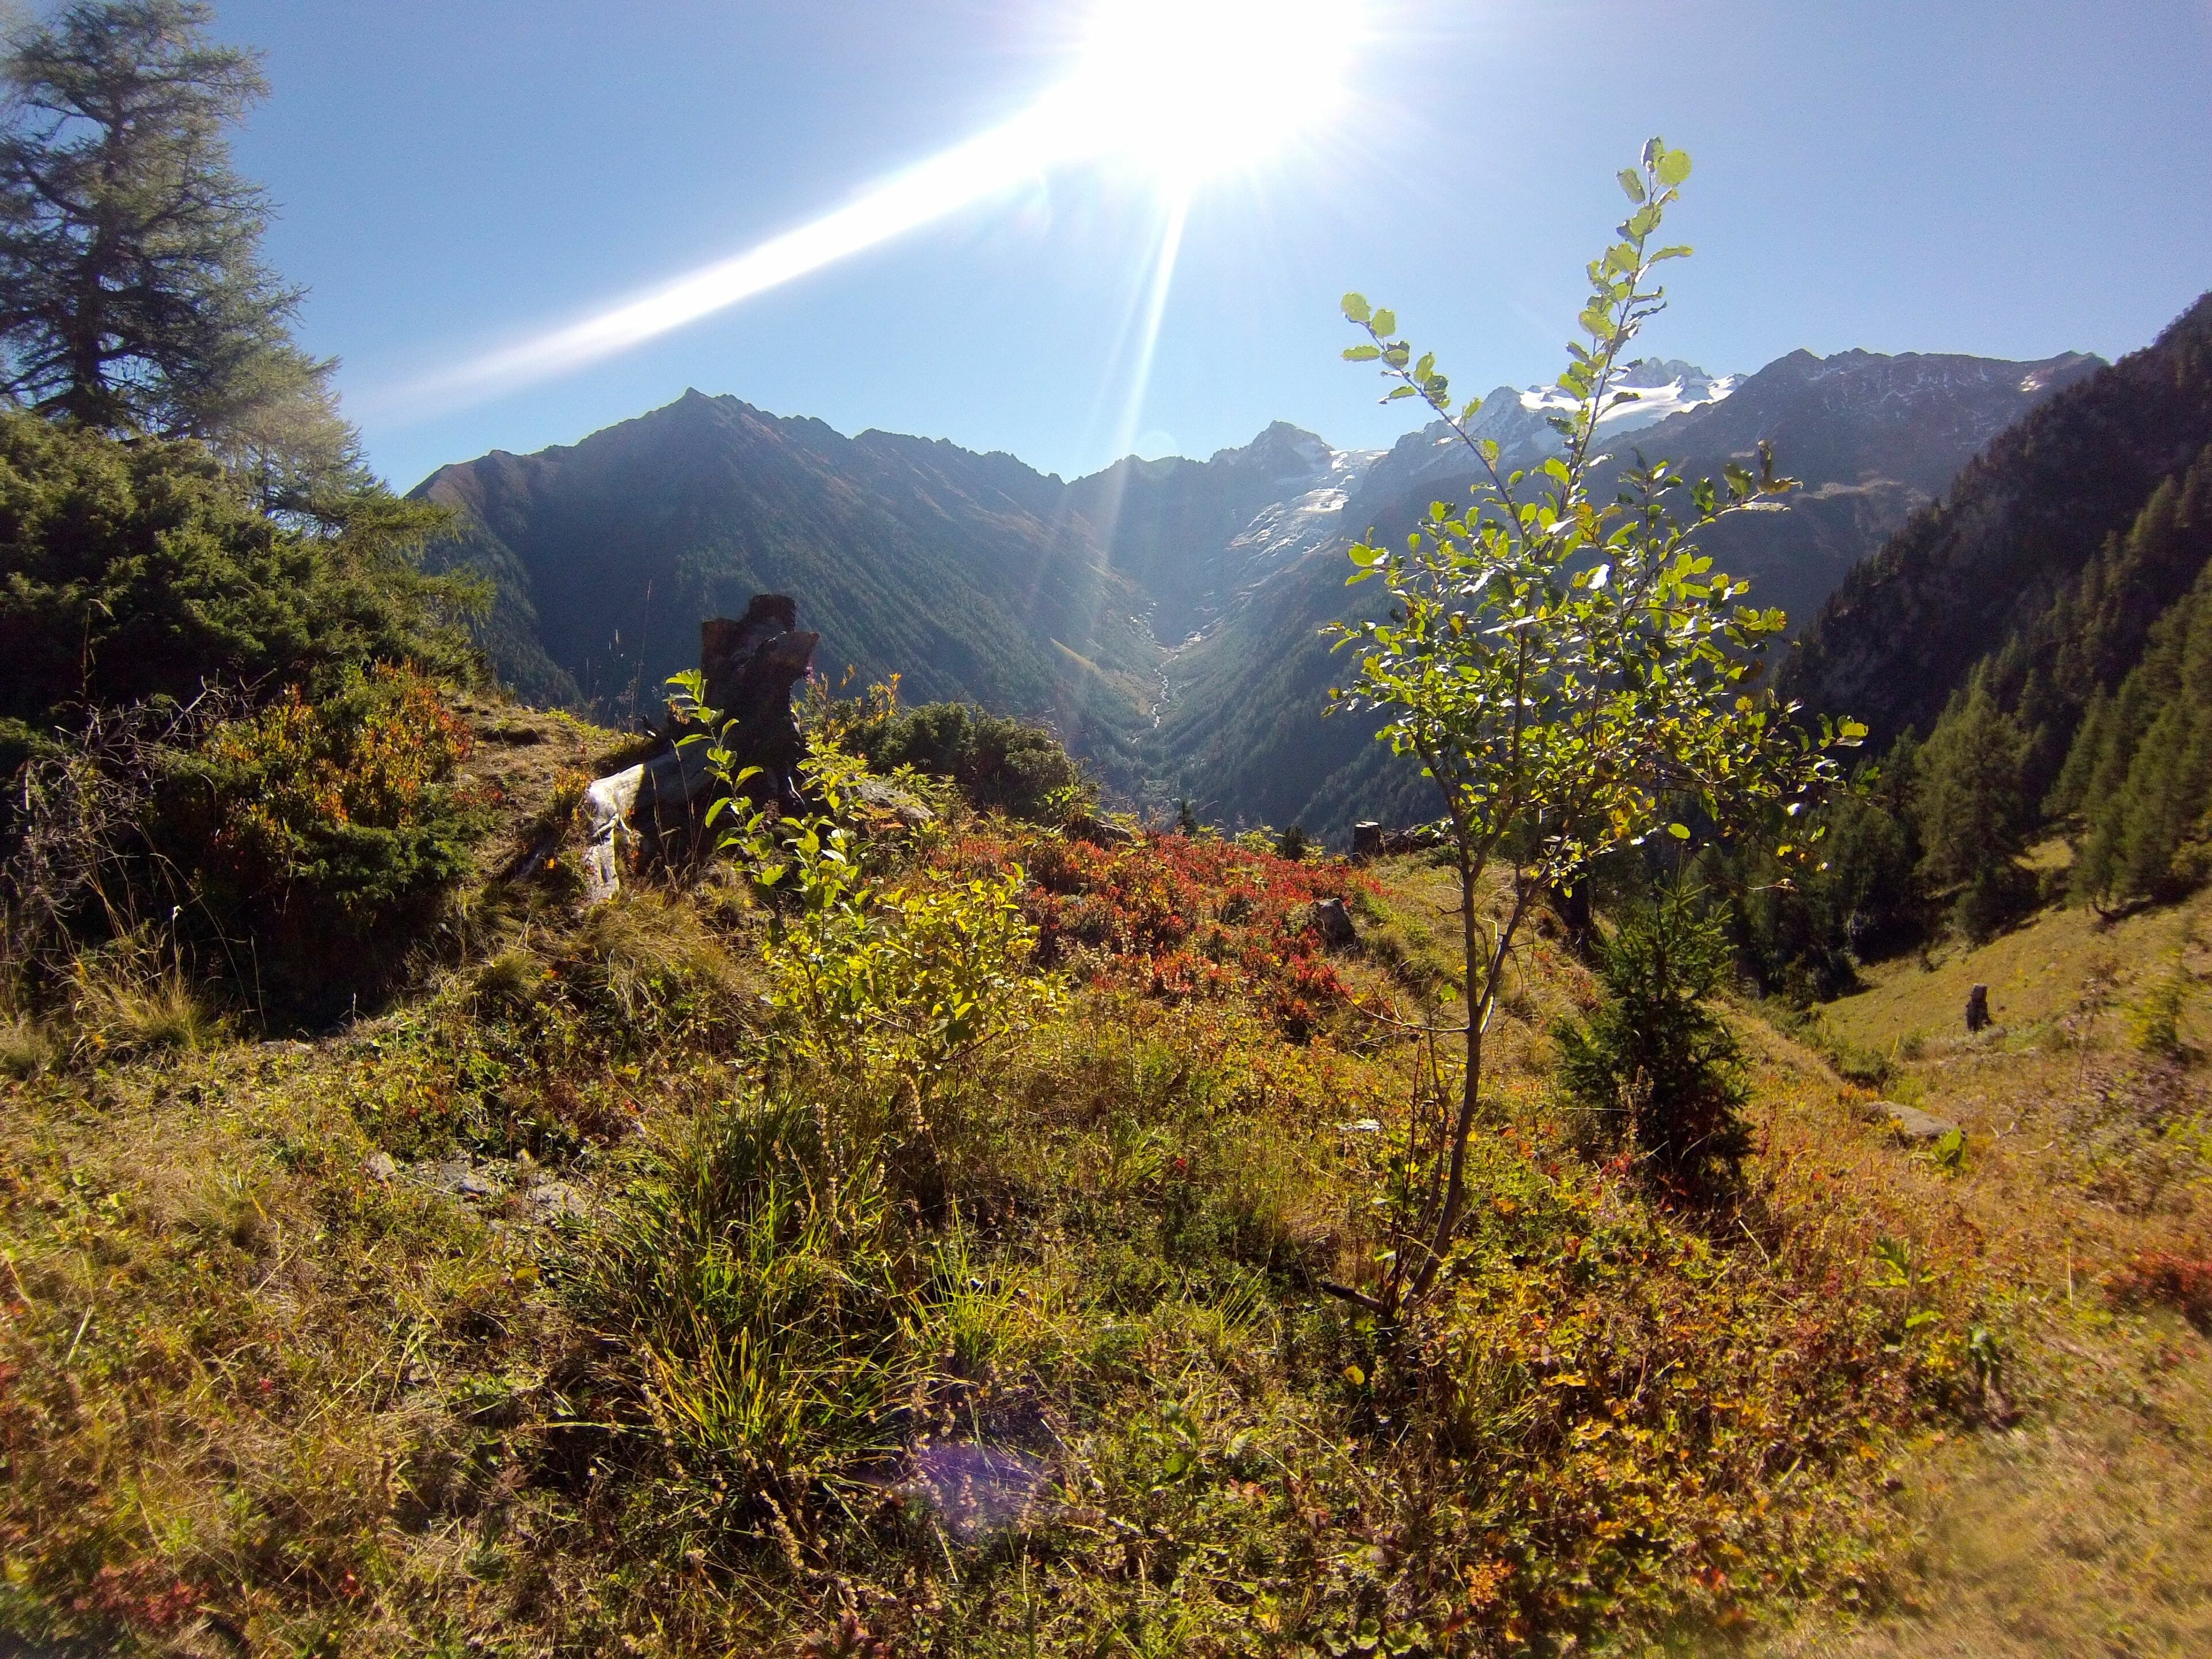 Looking over the Col de Forclaz with the Rhône valley in the distance, during a morning trail run above Trient.